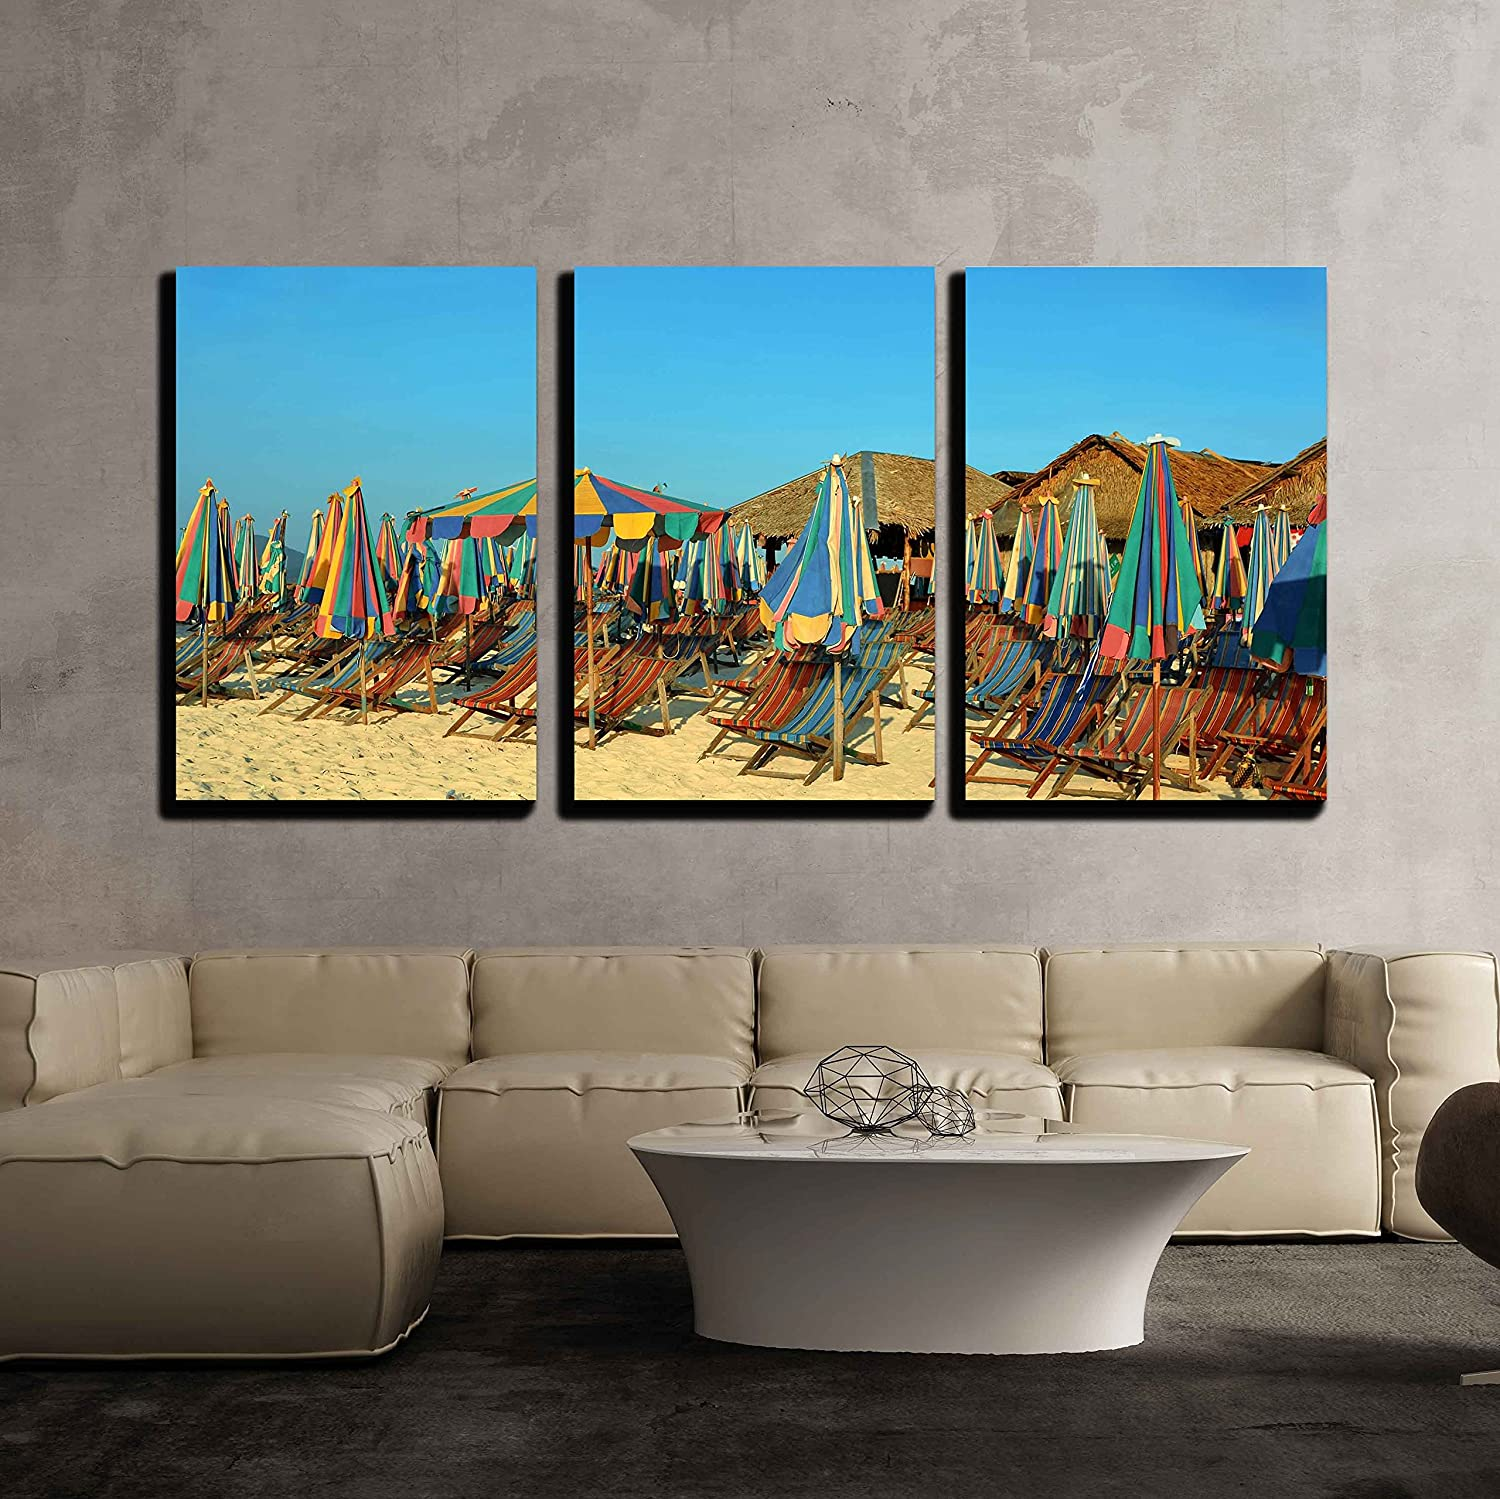 Amazon Com Wall26 3 Piece Canvas Wall Art Vacation Chairs And Umbrellas On Sandy Tropical Beach Of Thailand Island Modern Home Art Stretched And Framed Ready To Hang 24 X36 X3